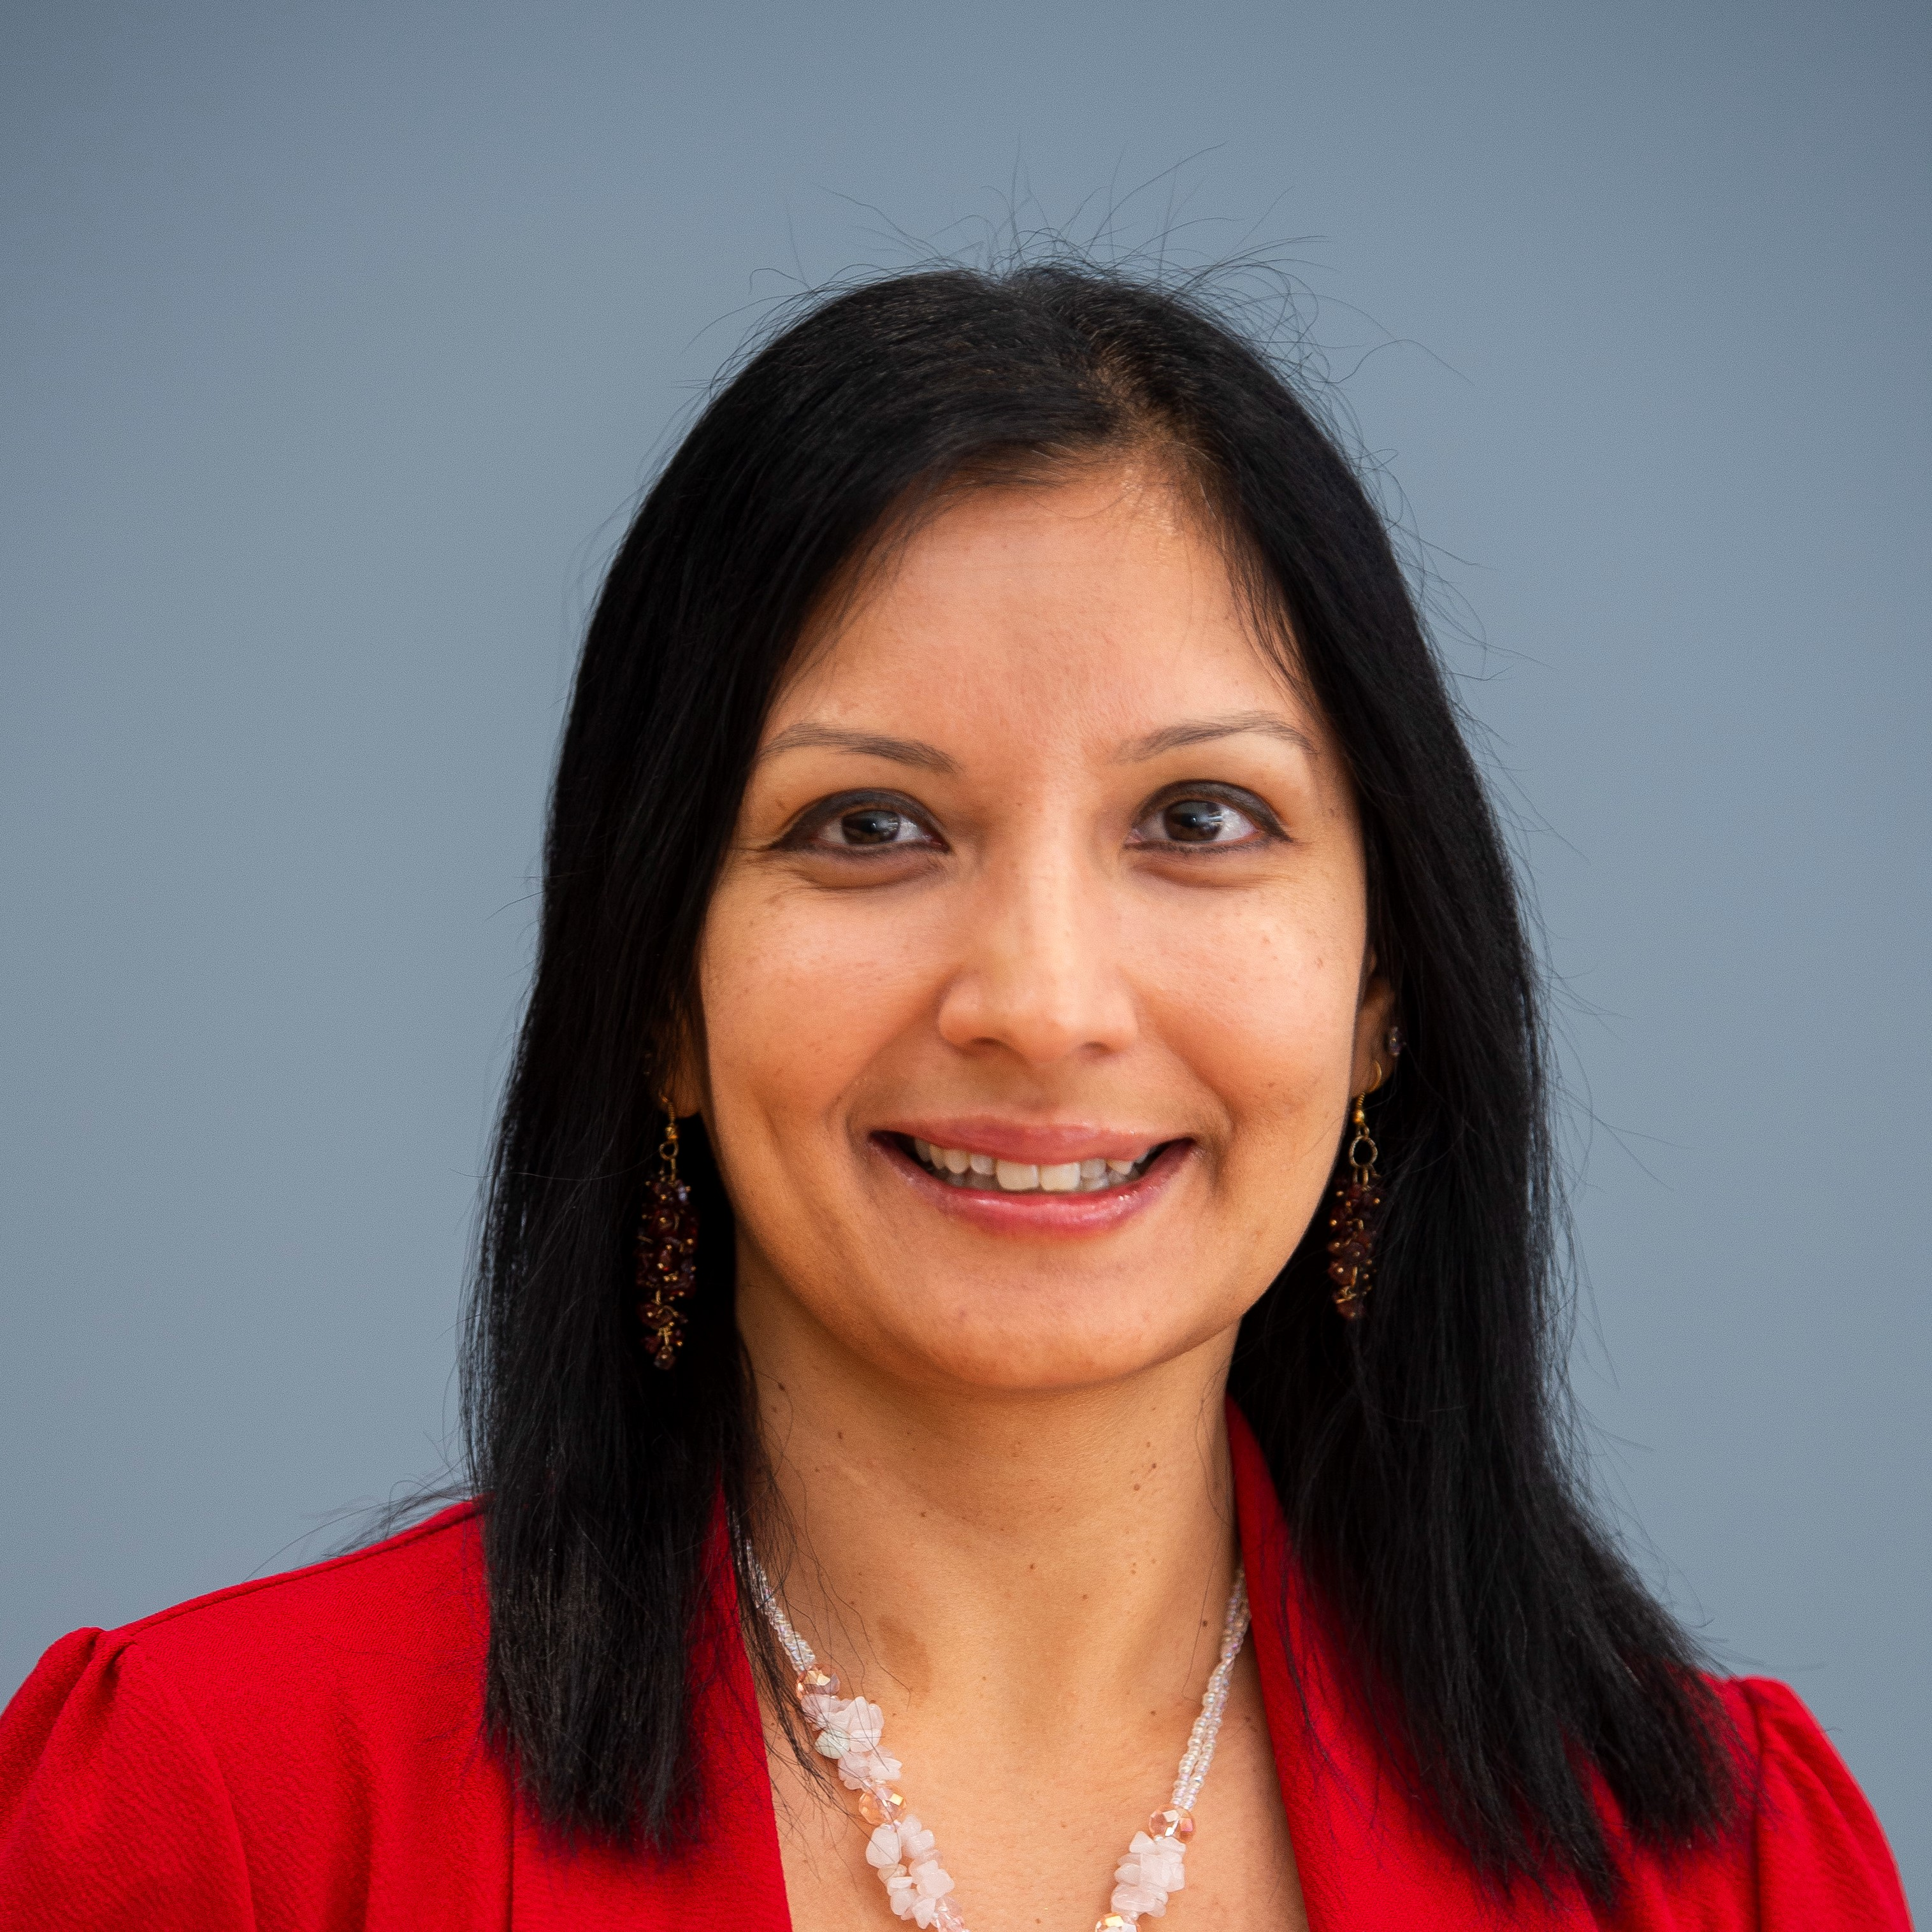 Jothi Dugar CISO, Wellness Practitioner, Author